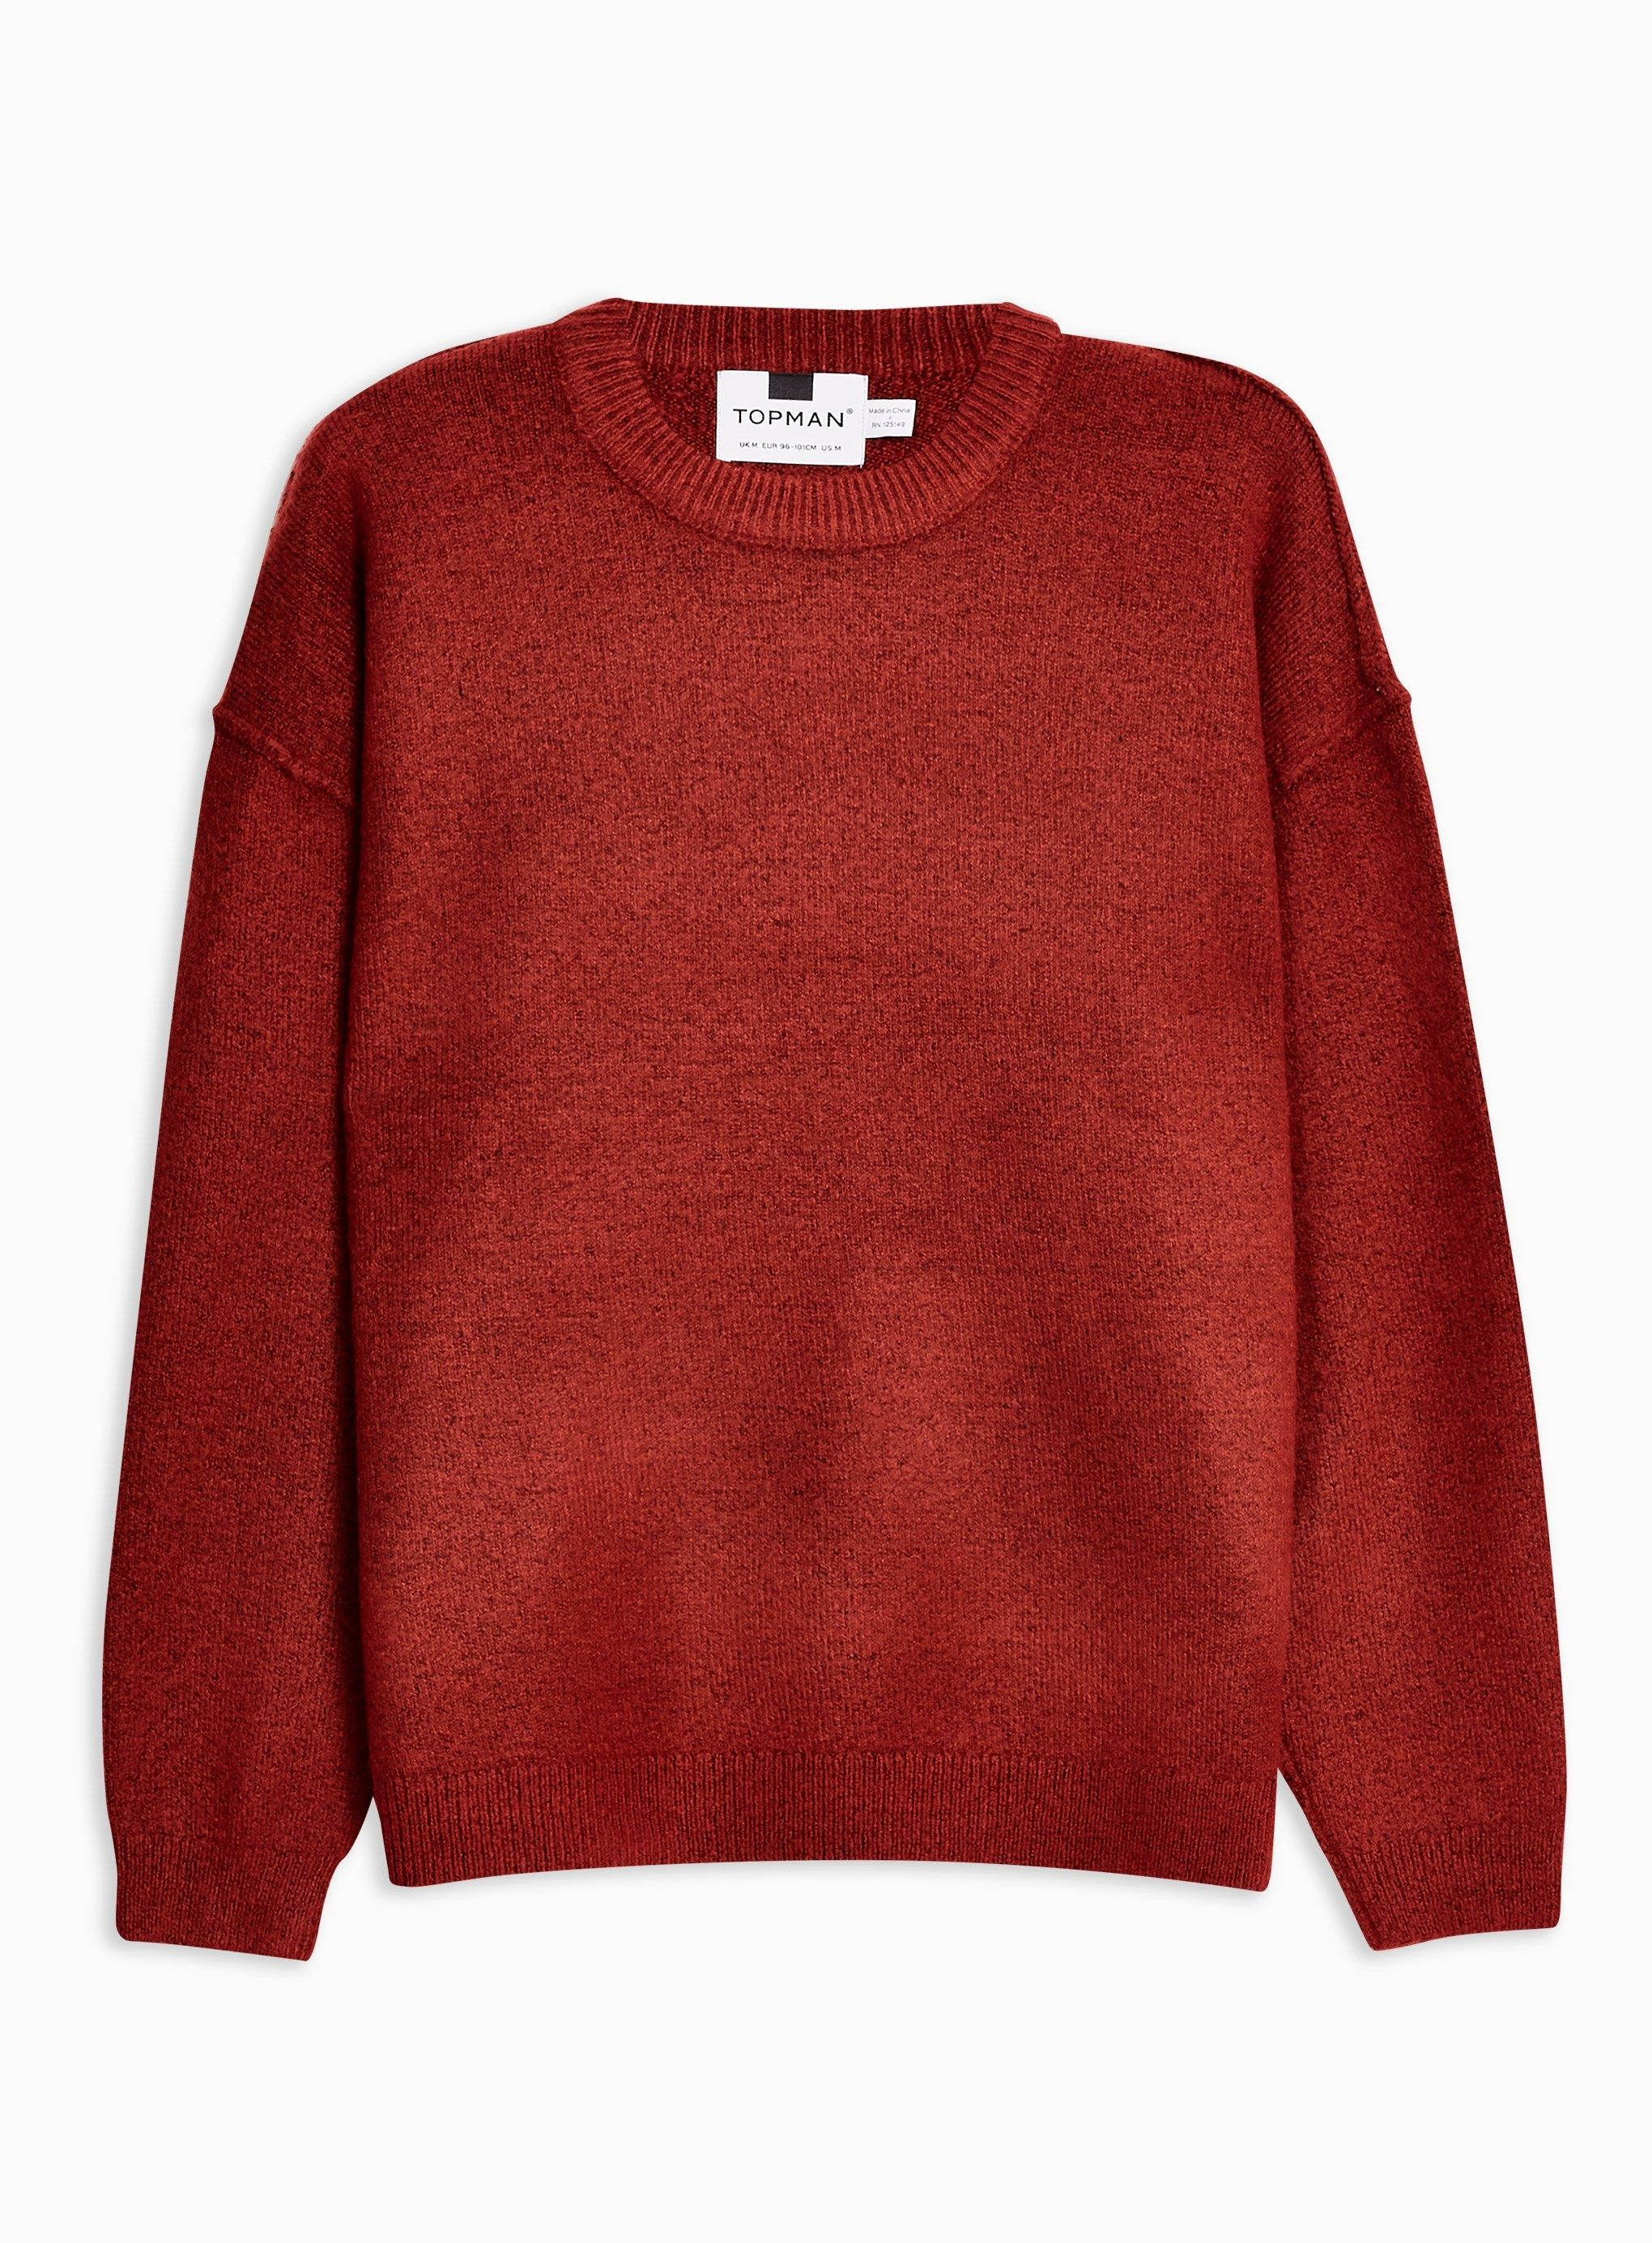 Burgundy Harlow Oversized Ensemble Sweater Sweaters rgr5qx